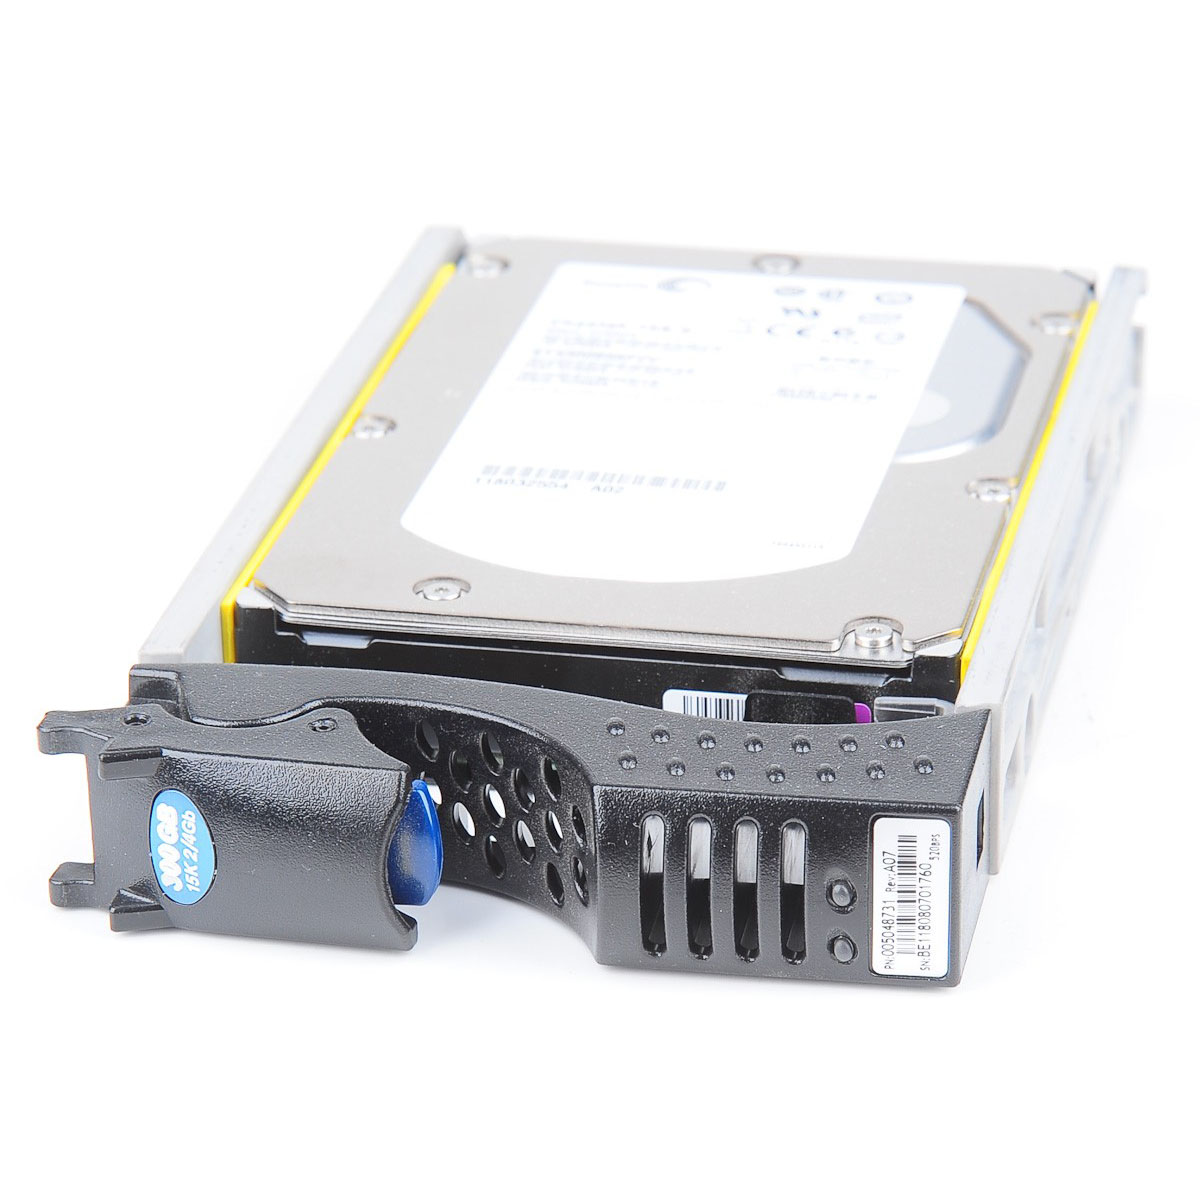 CX-2G10-300 EMC 2Gb/s 300GB 10k RPM FC Hard Drive - 005048597, 005048808, 005048633